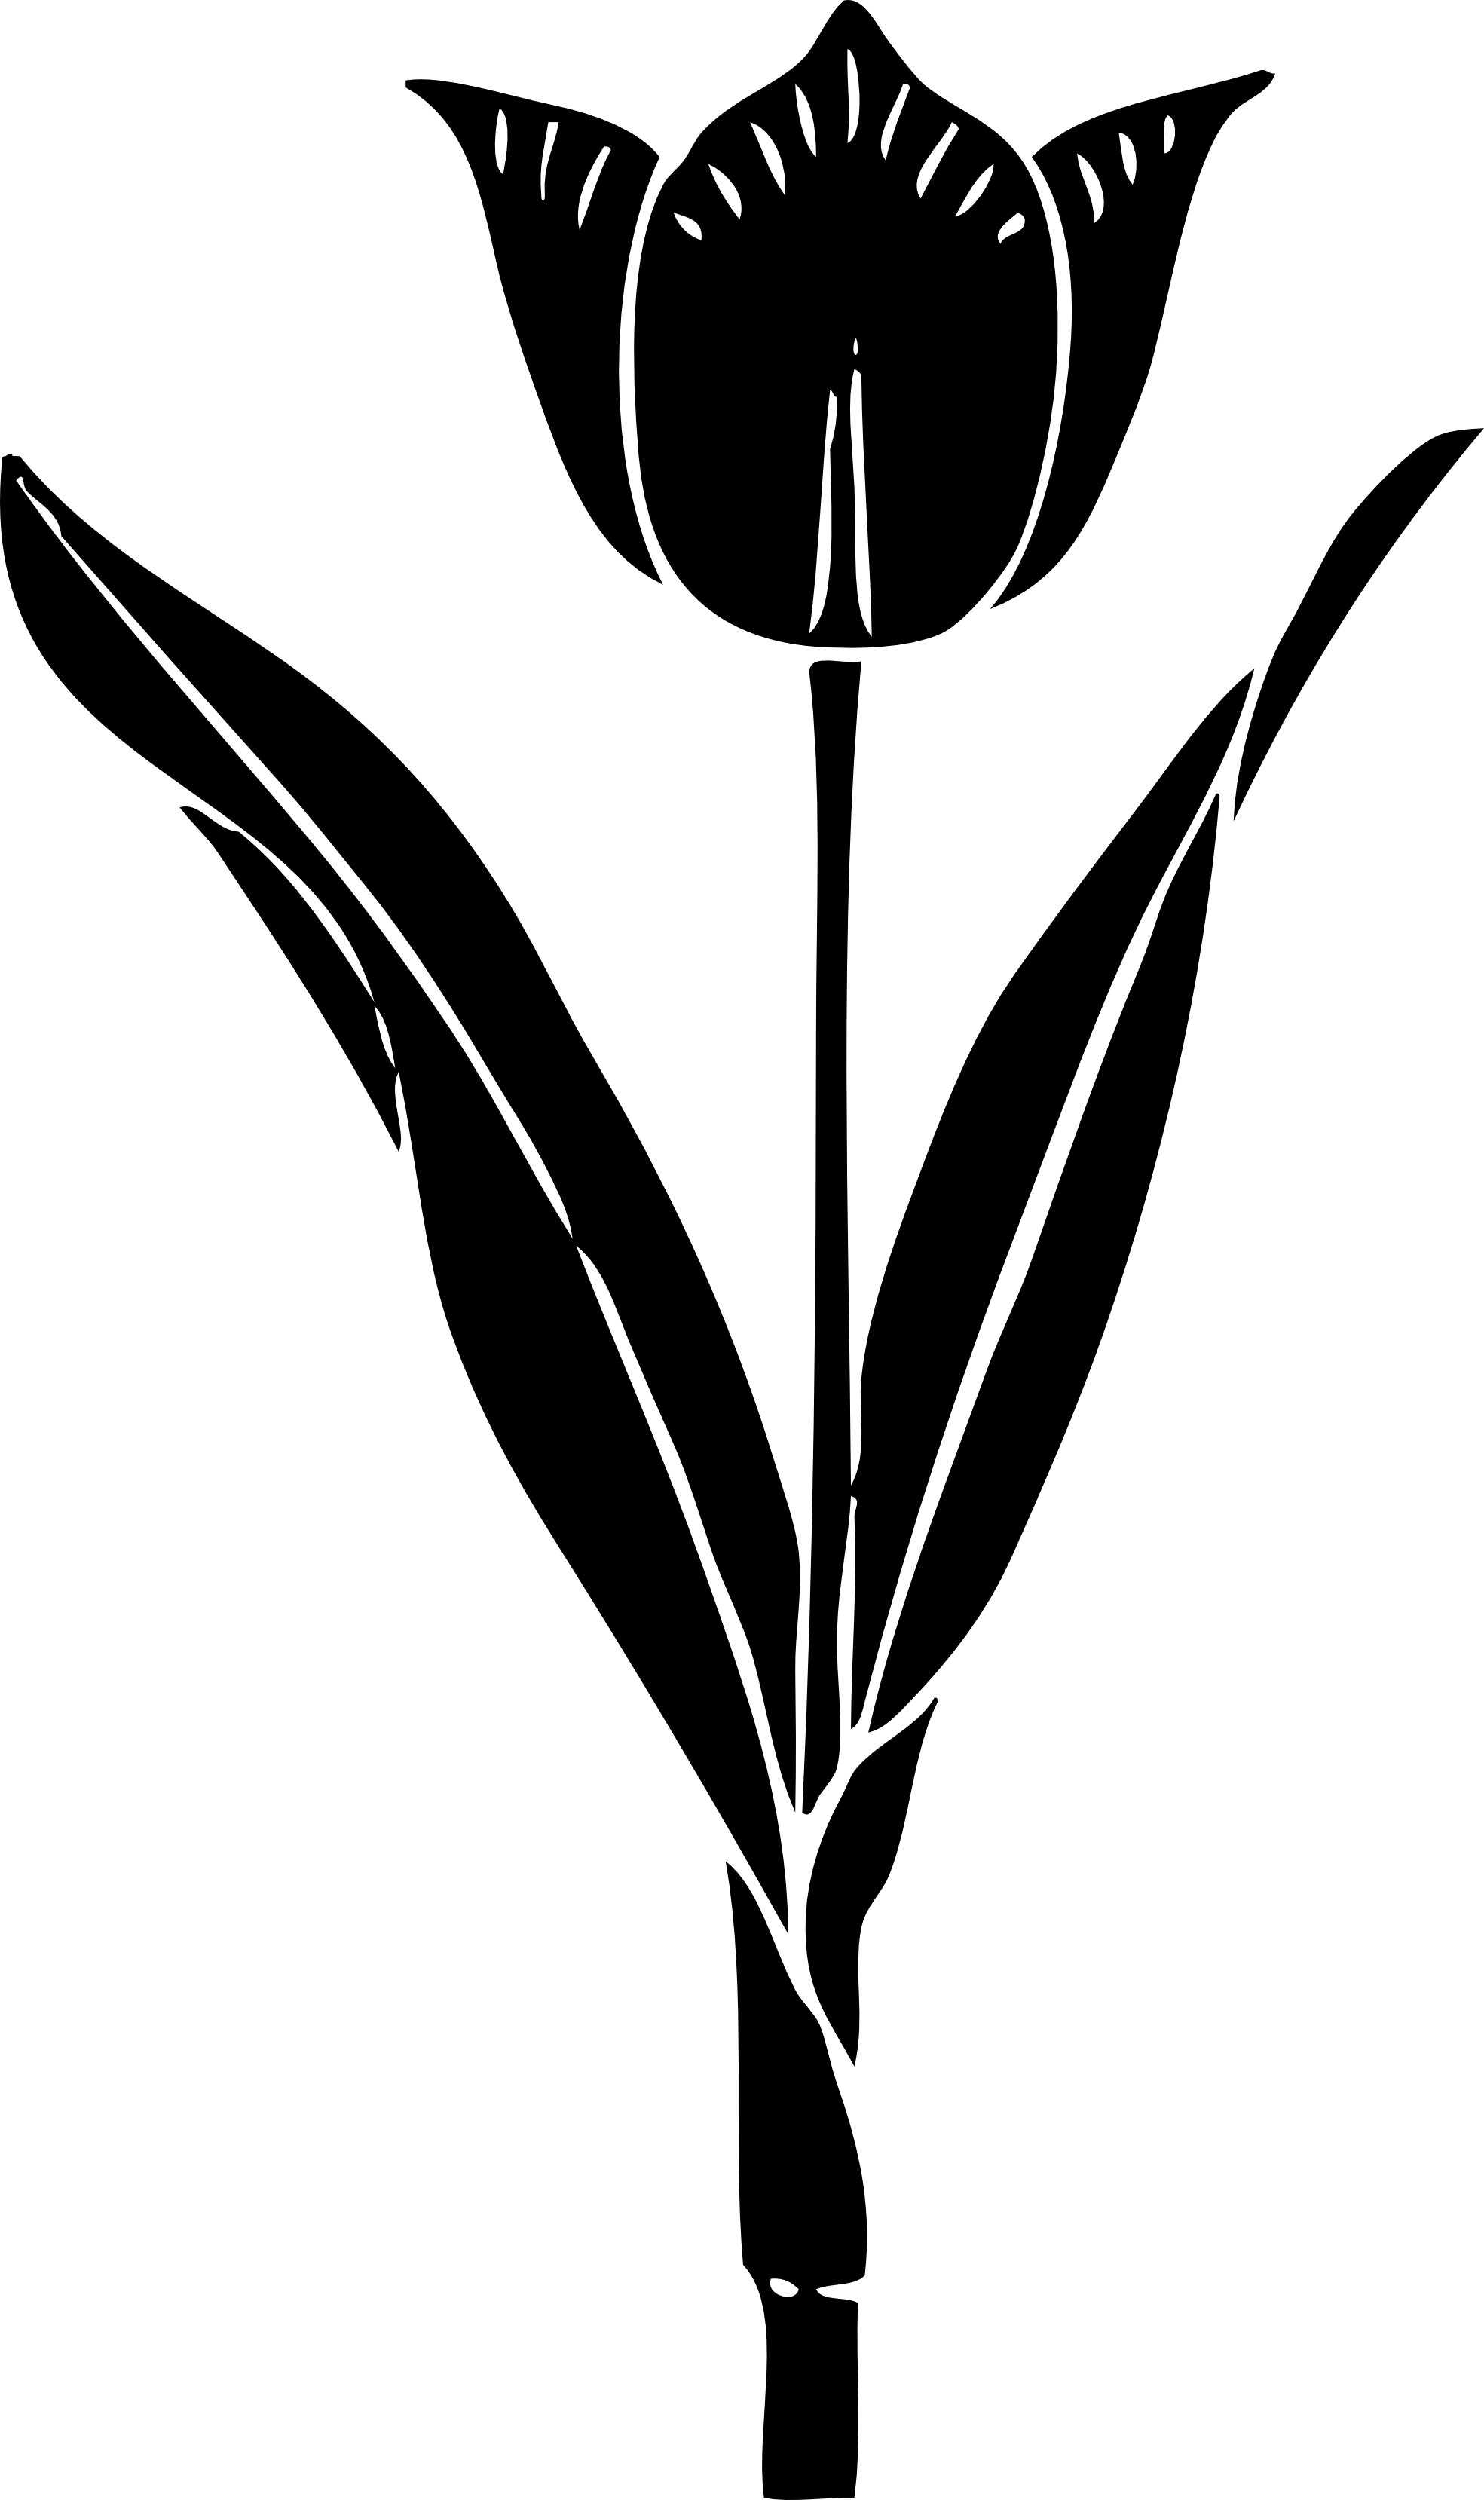 Tulip Silhouette Drawing Clip art.